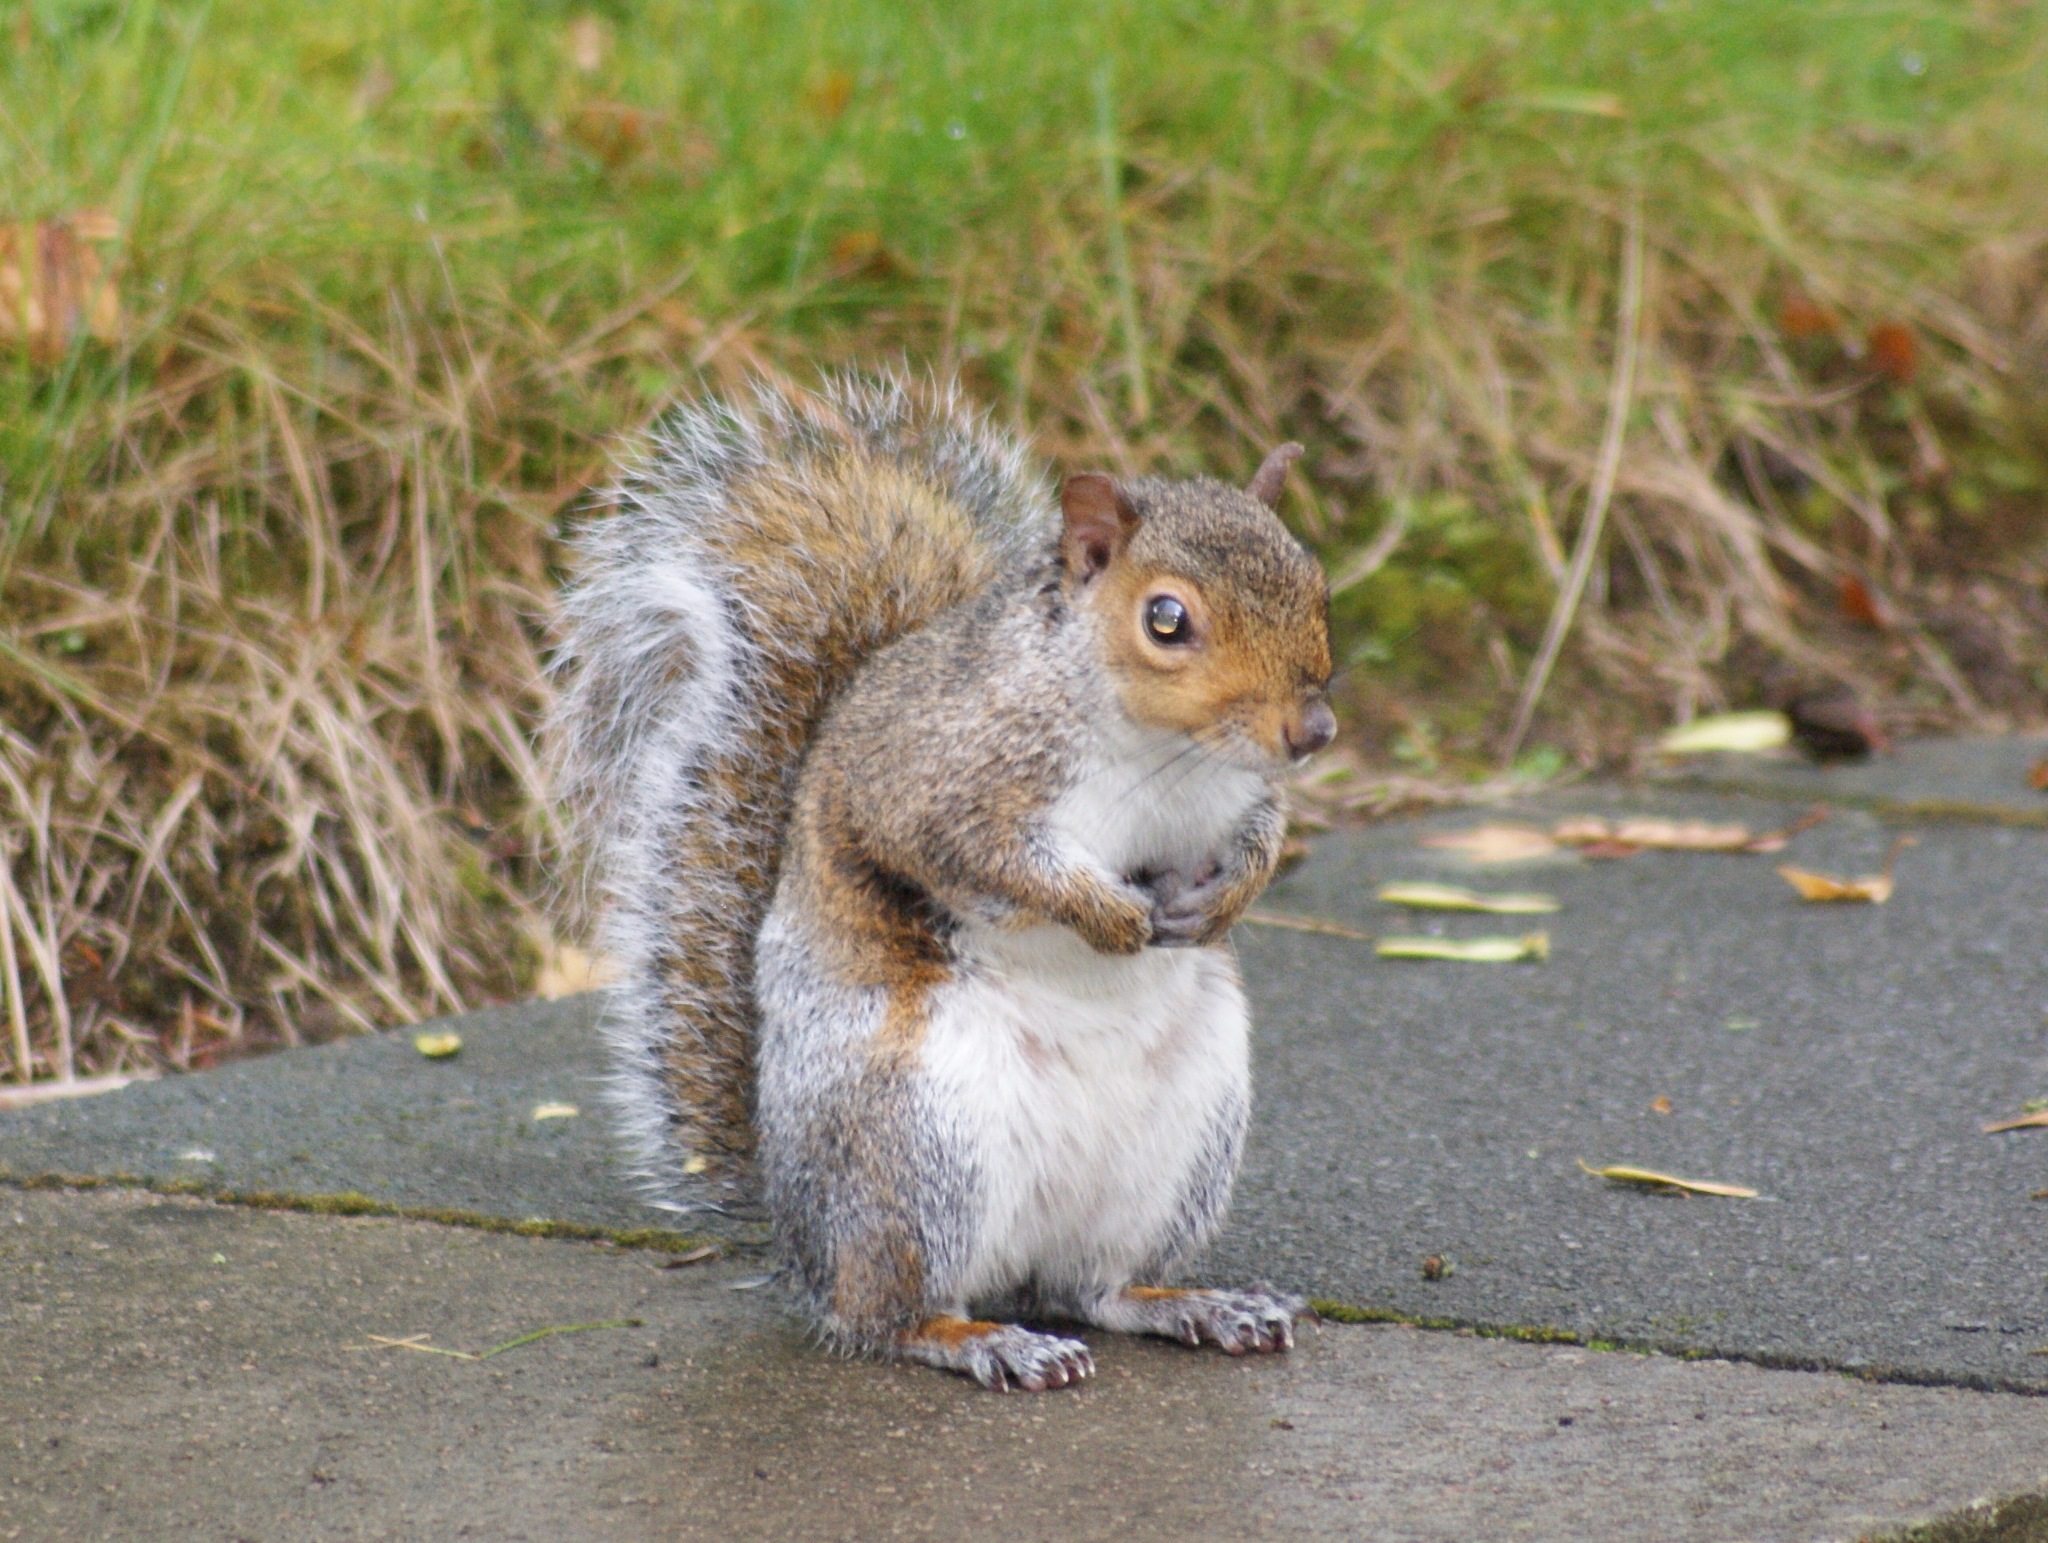 squirrel by Steve Smith